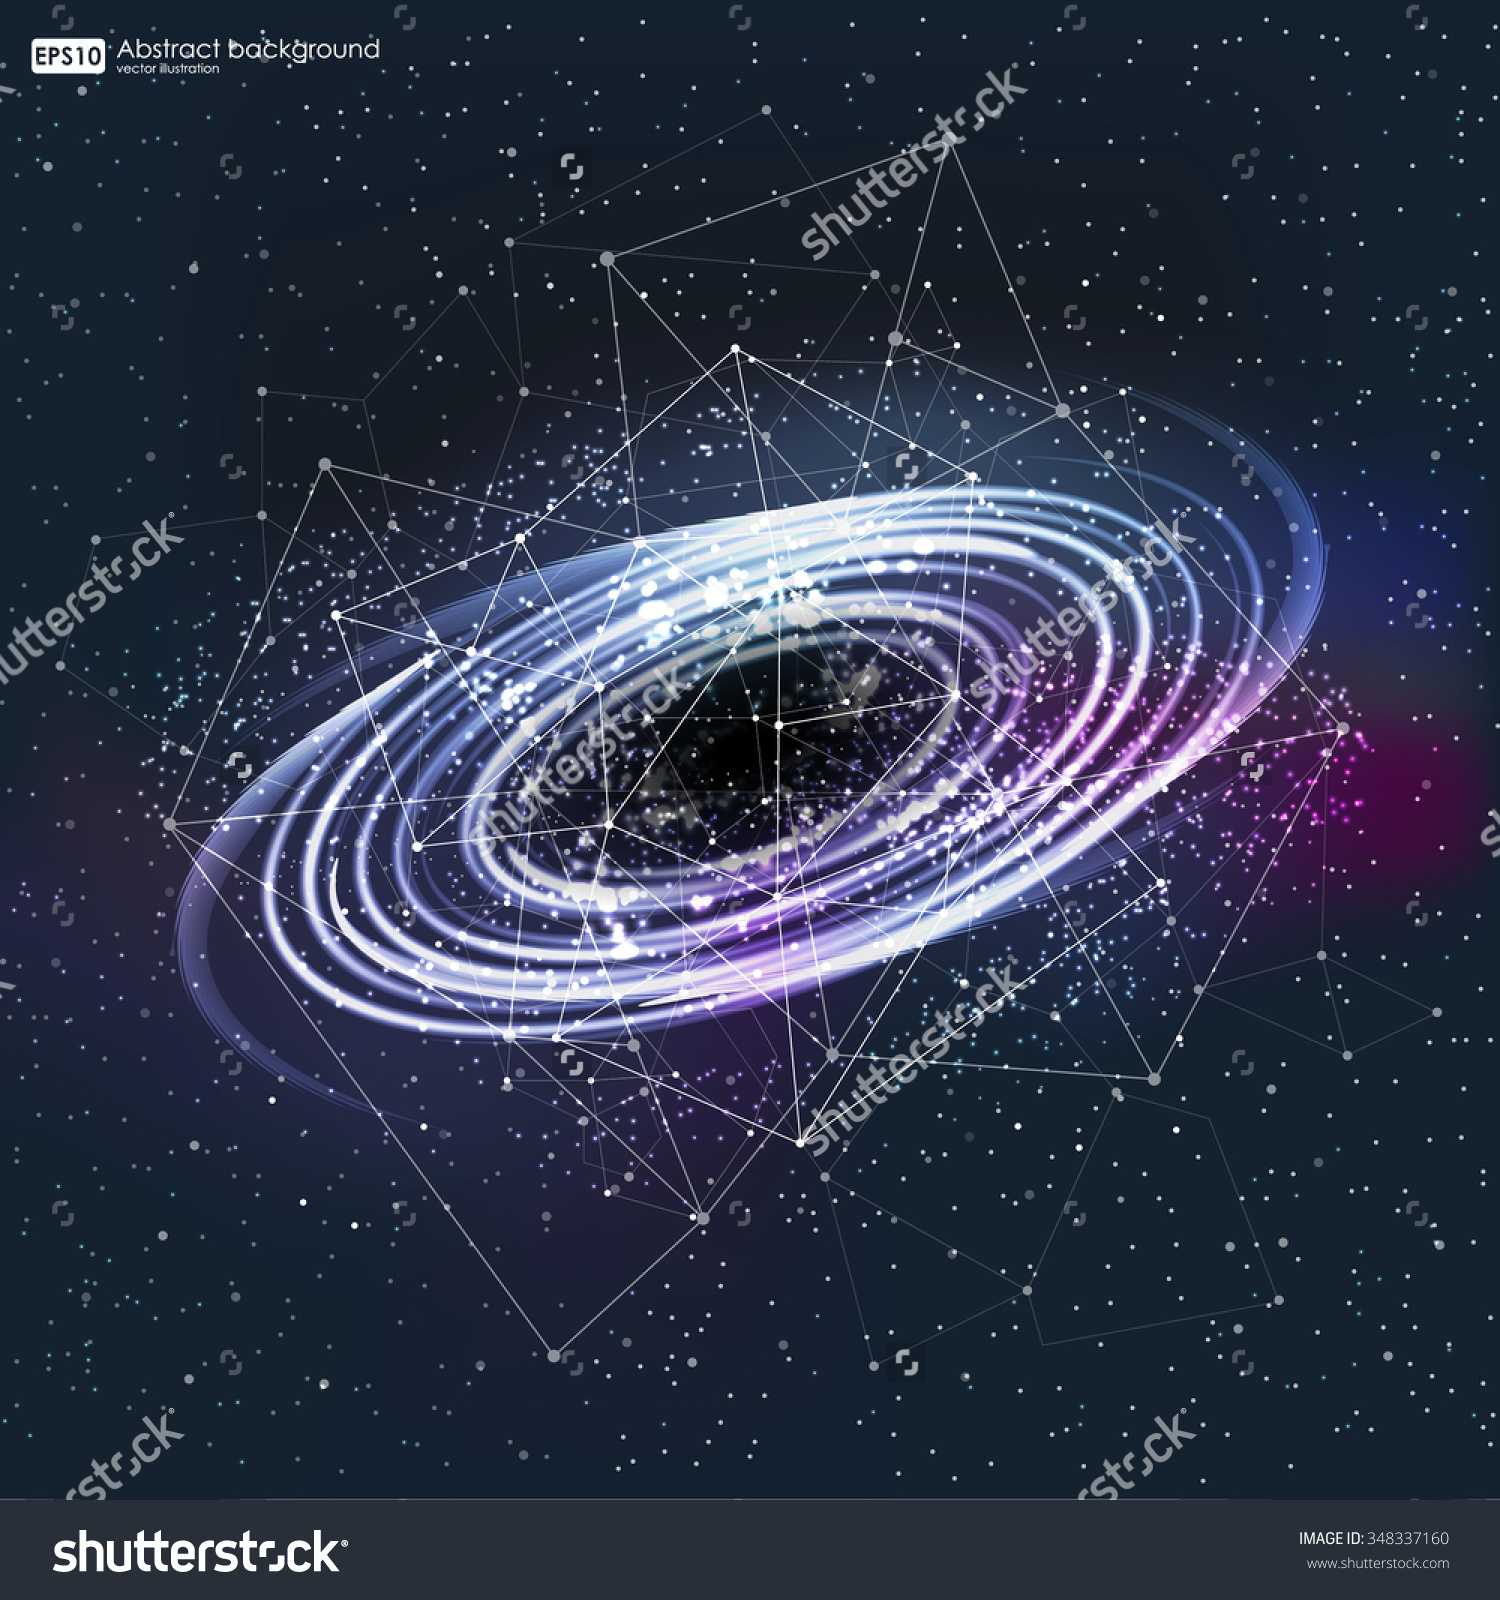 Materials on the topic of Cosmos: a selection of sites